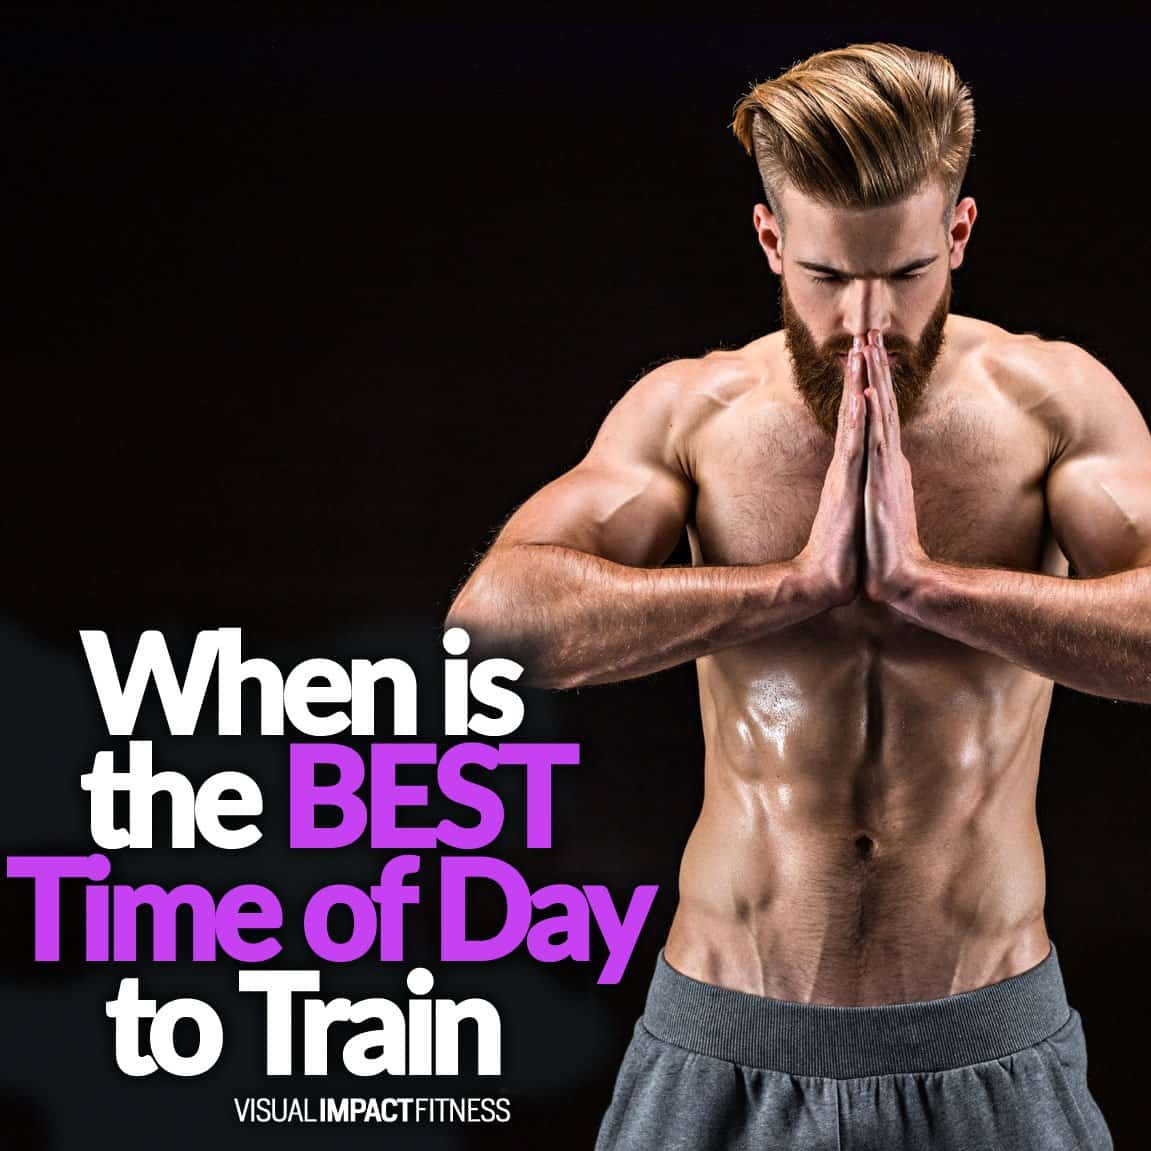 When is the BEST Time of Day to Train